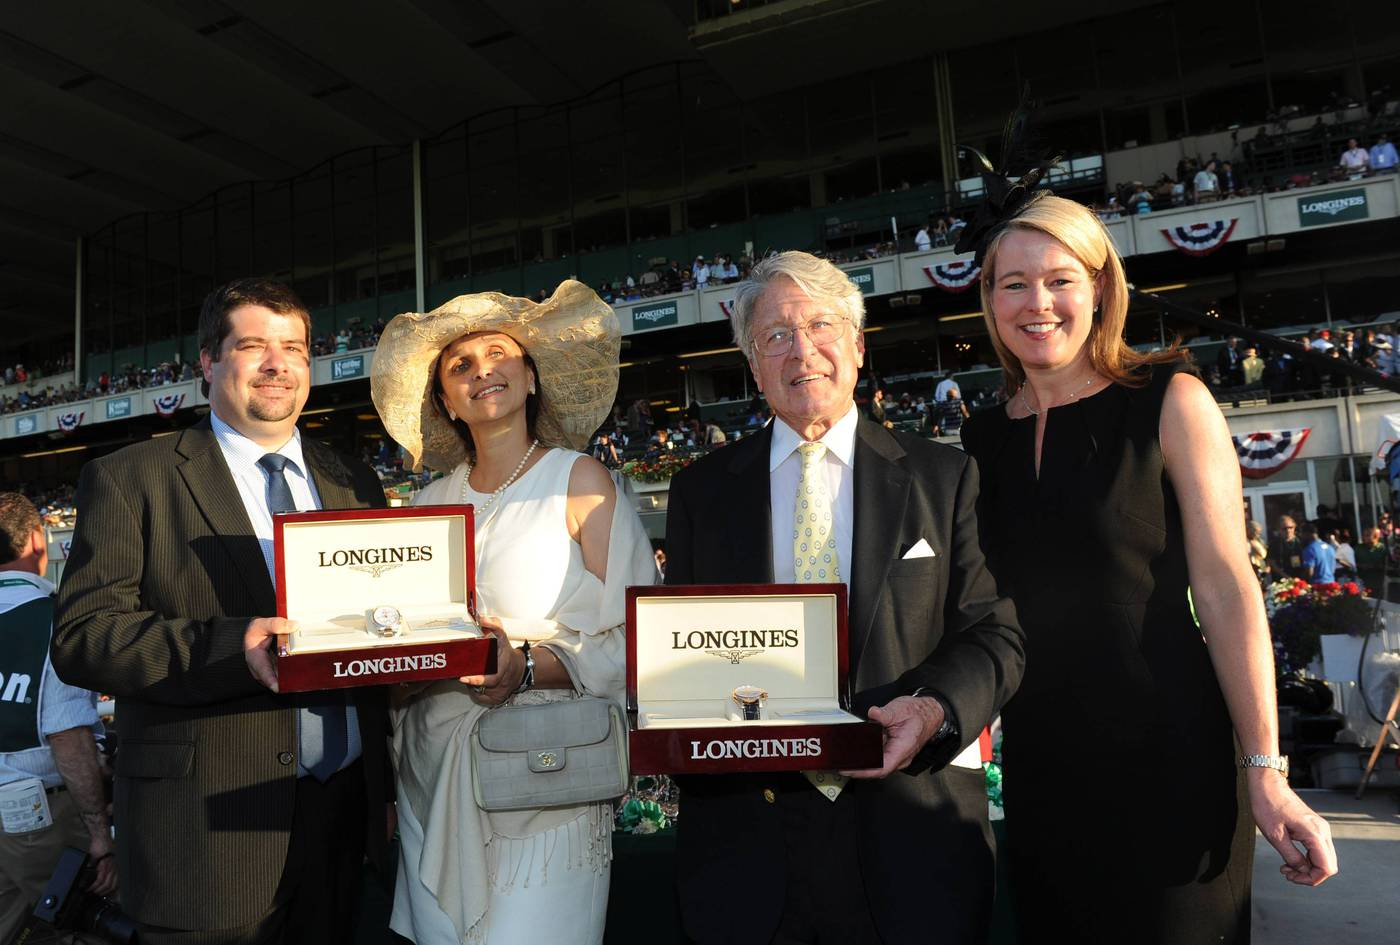 Longines Flat Racing Event: Longines Times Tonalist's surprising Victory at Belmont Stakes 2